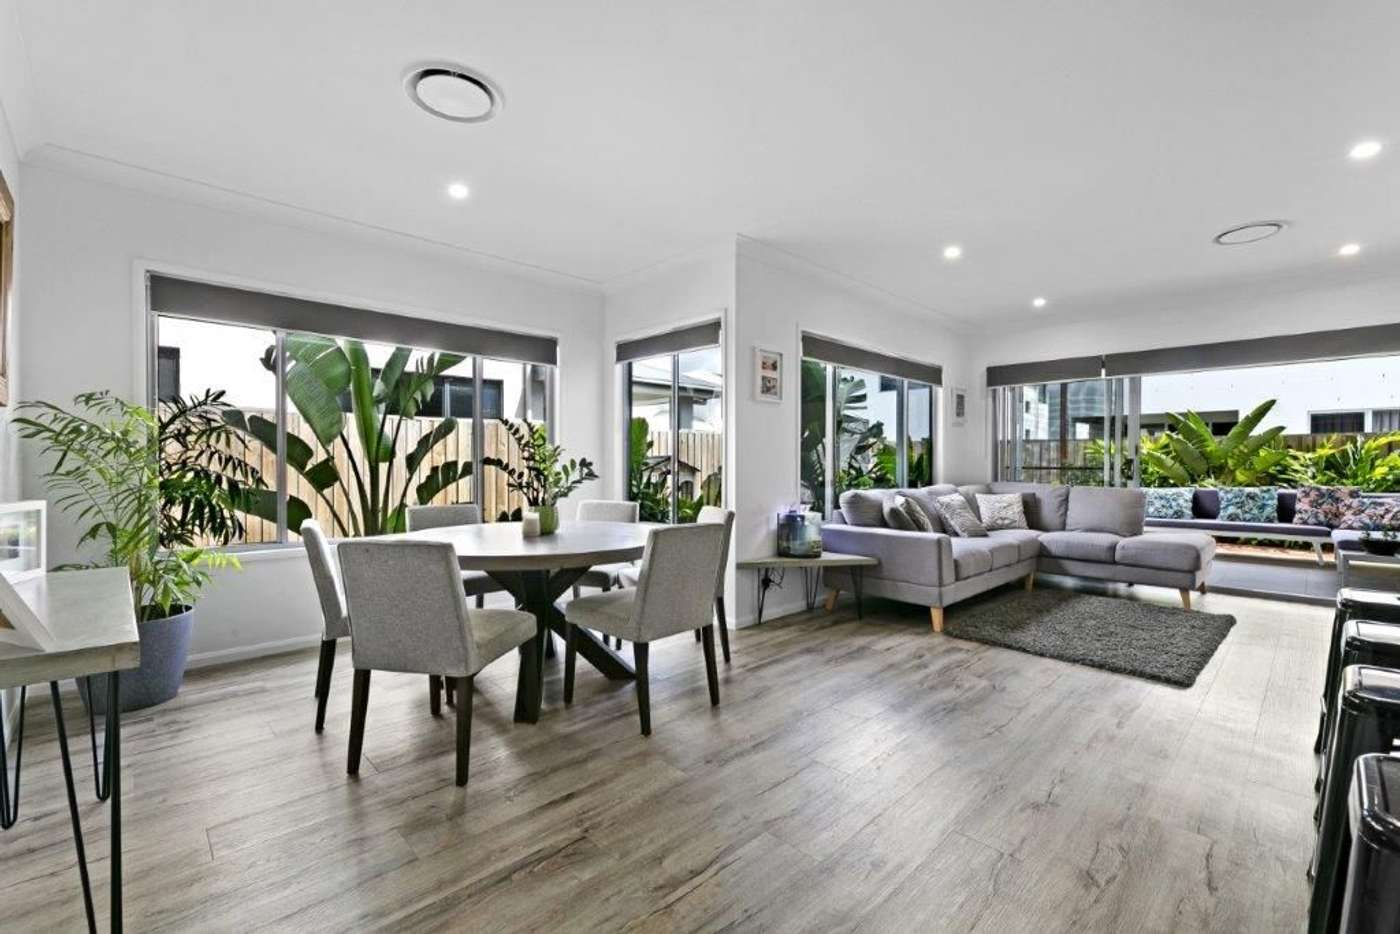 Seventh view of Homely house listing, 6 Jade Way, Helensvale QLD 4212